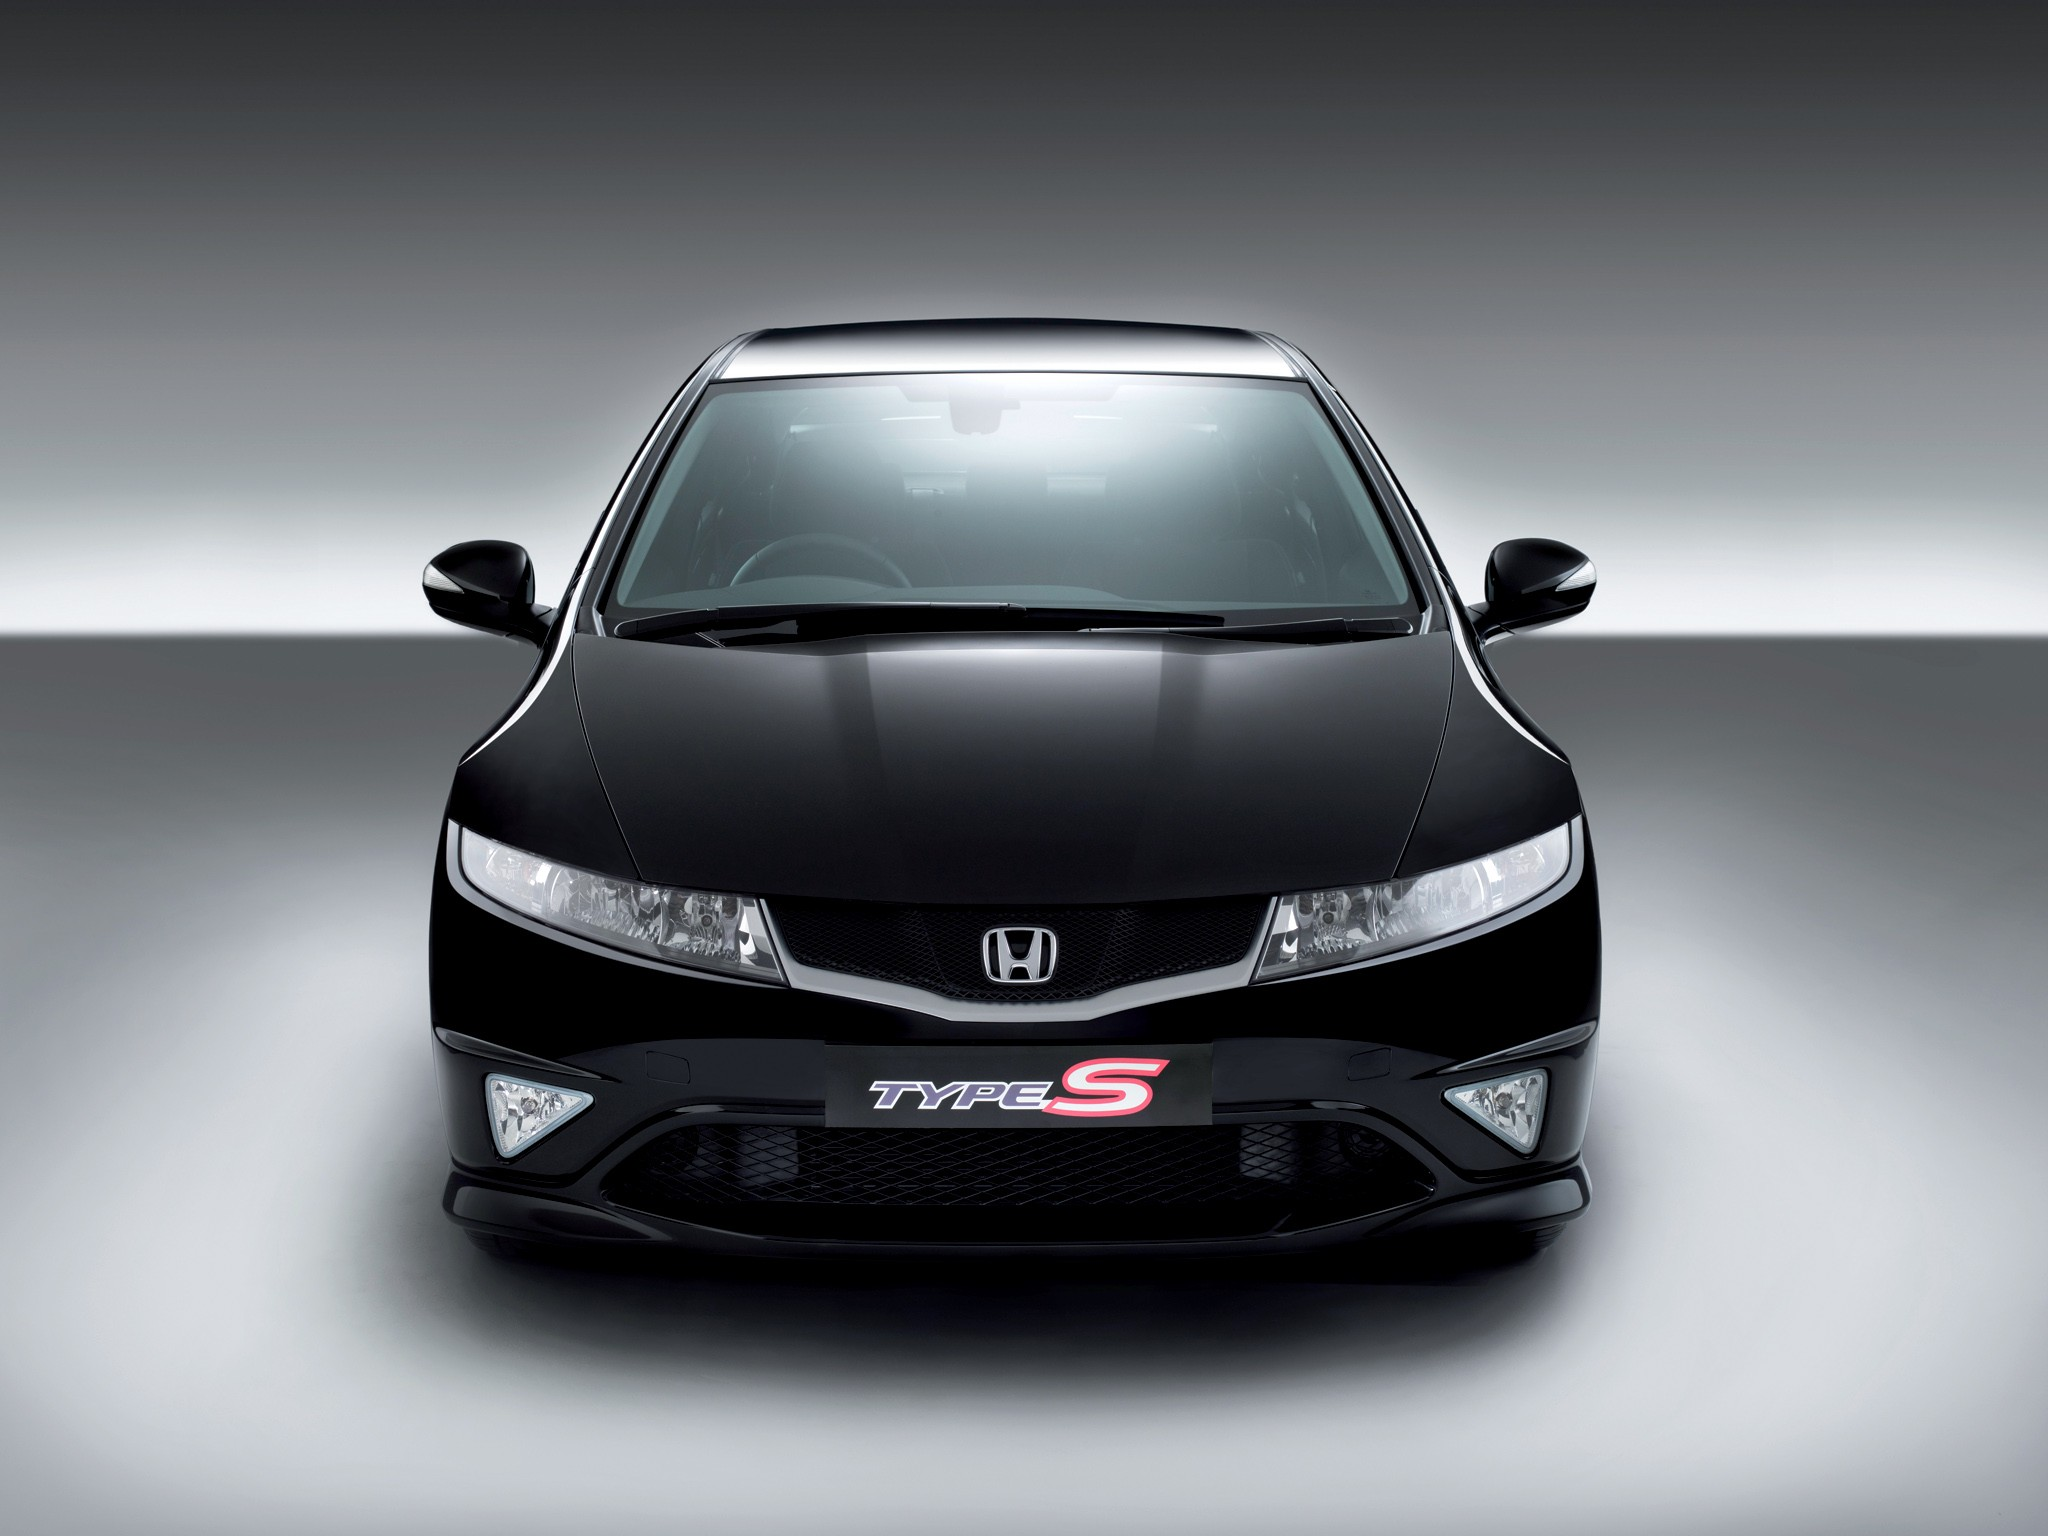 HONDA Civic Type S - 2008, 2009, 2010, 2011 - autoevolution